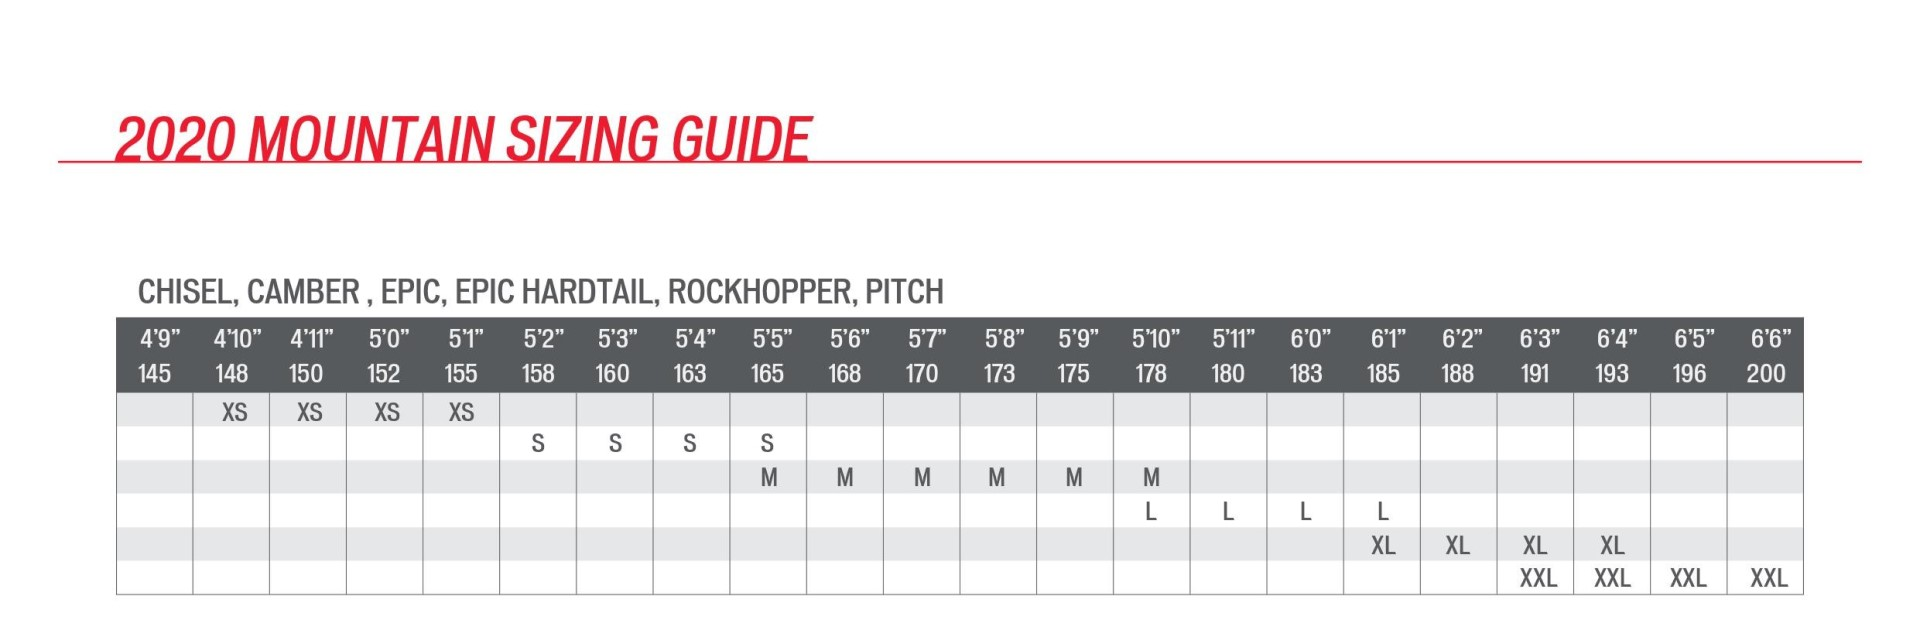 Sizes Chisel, Camber, Epic, Rockhopper, Pitch.